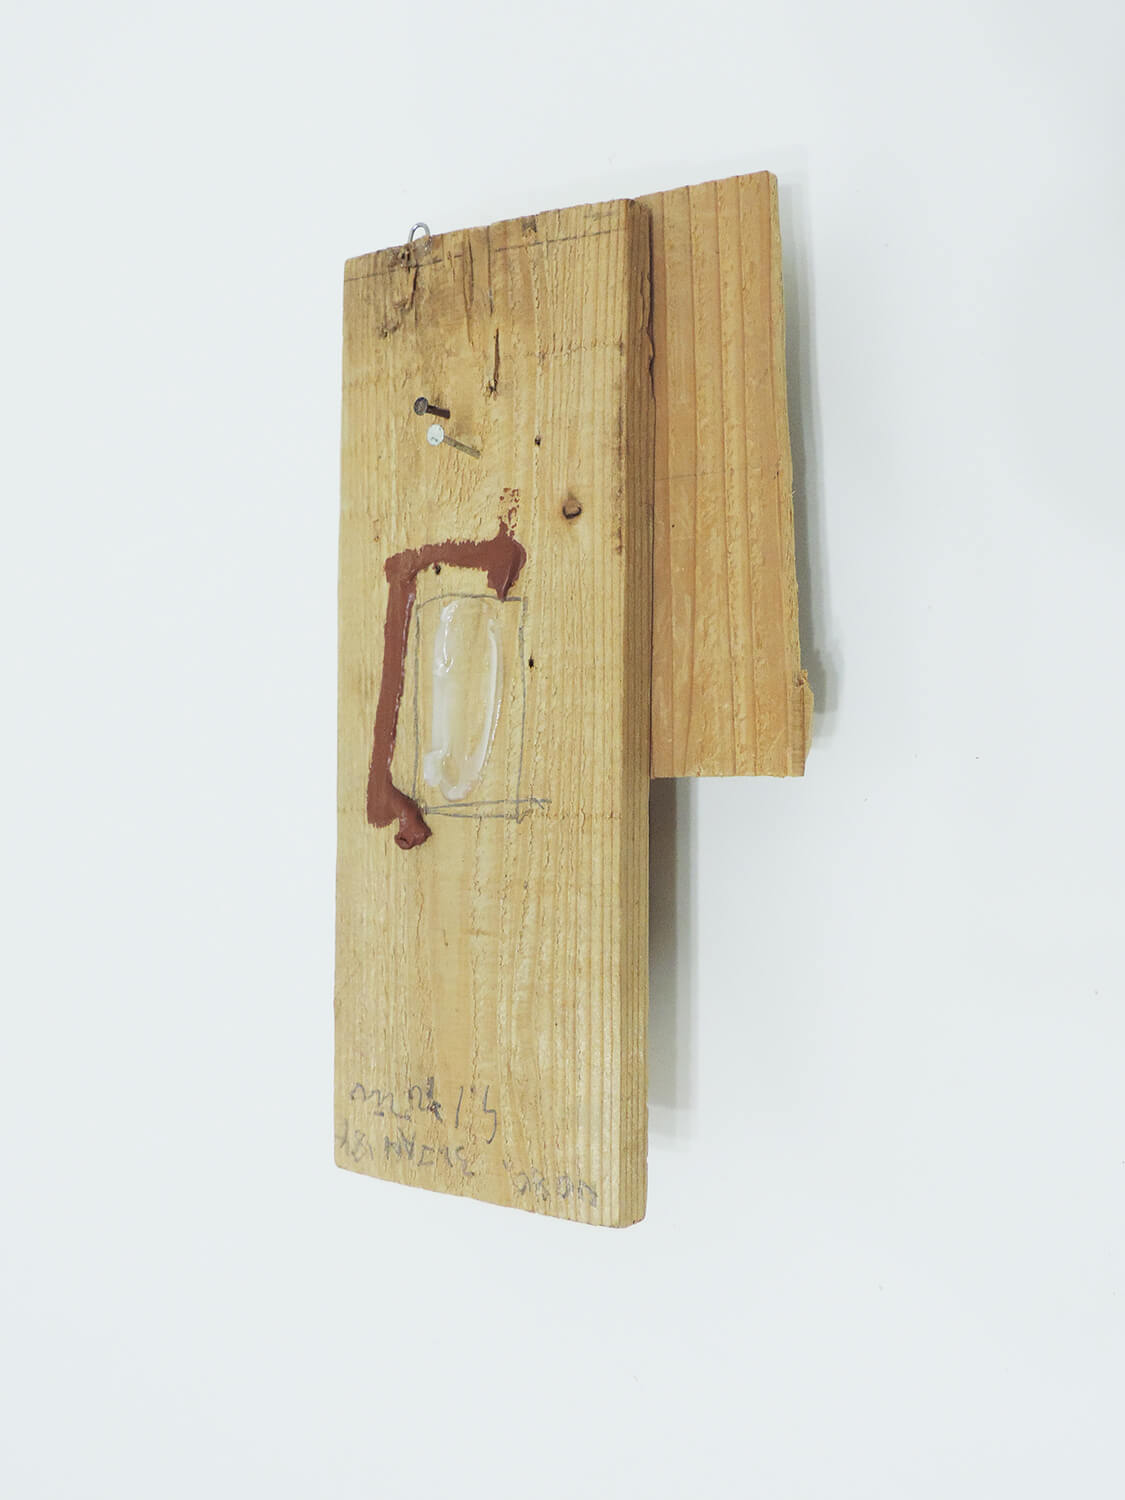 <b>No stop even at a moment / 一瞬たりとも停止なし</b><br>Acrylic, nails, wood 23.2 × 13 × 6 cm 1984